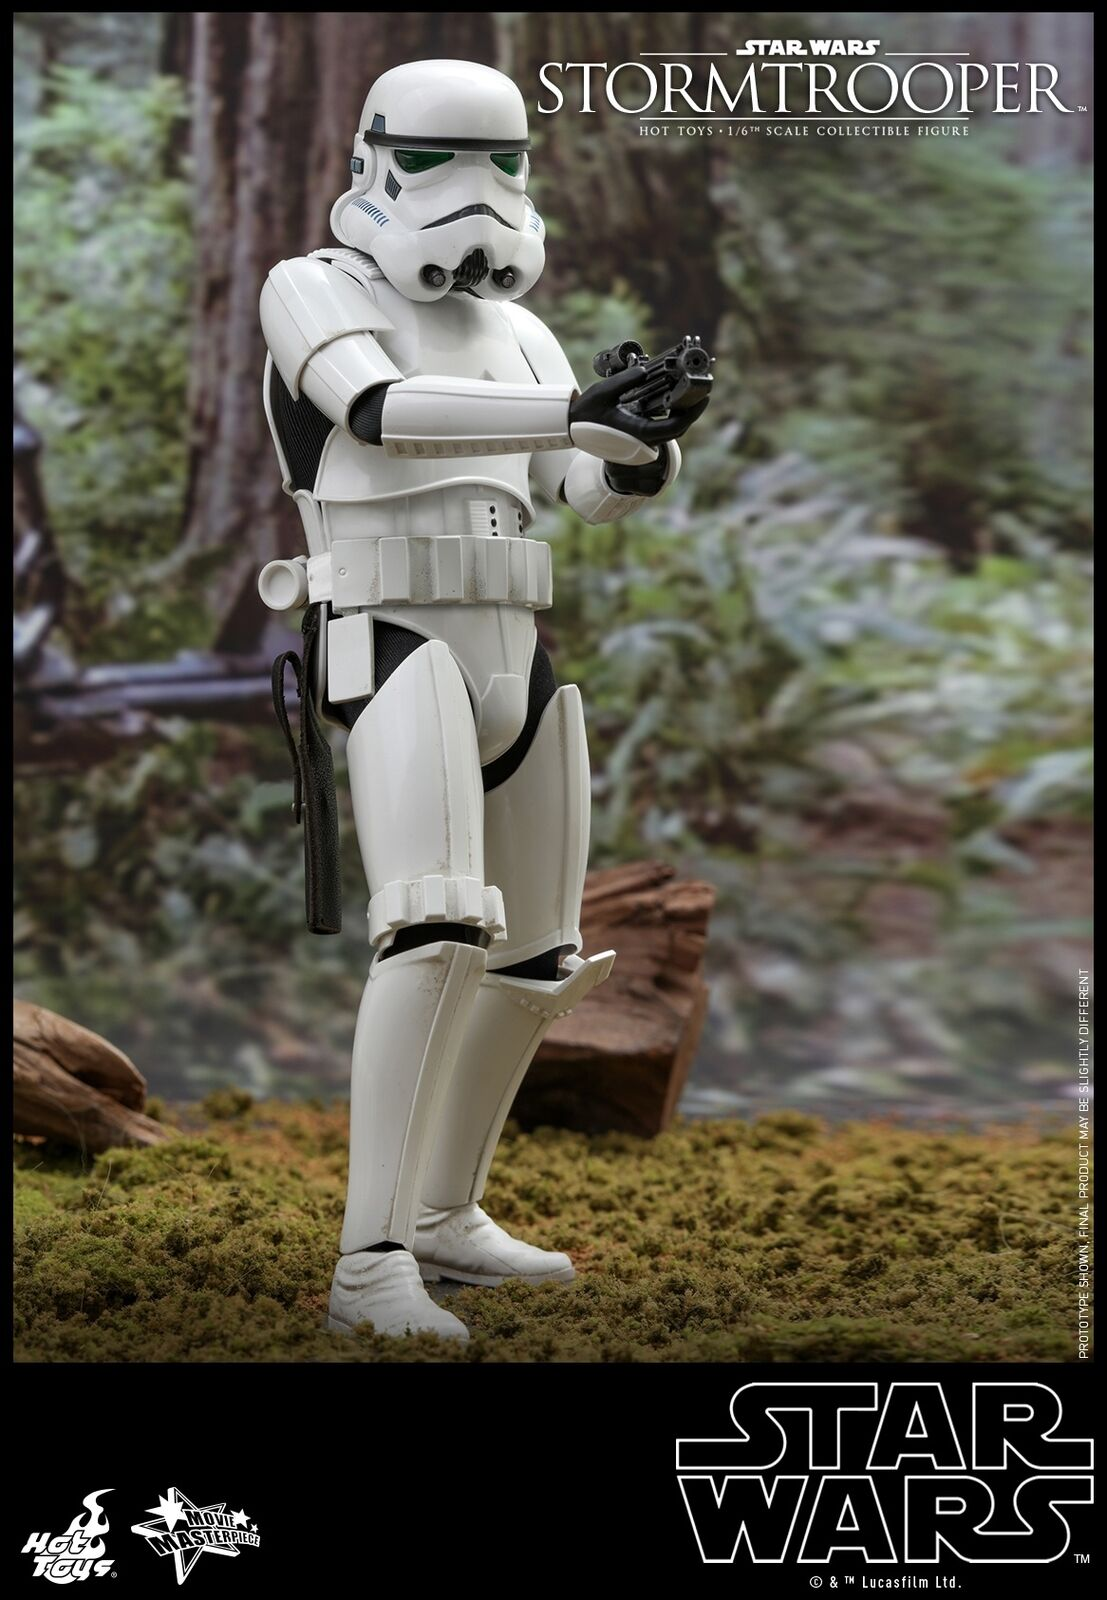 Hot Toys Star Wars 1 6th scale Stormtrooper Collectible Figure MMS514